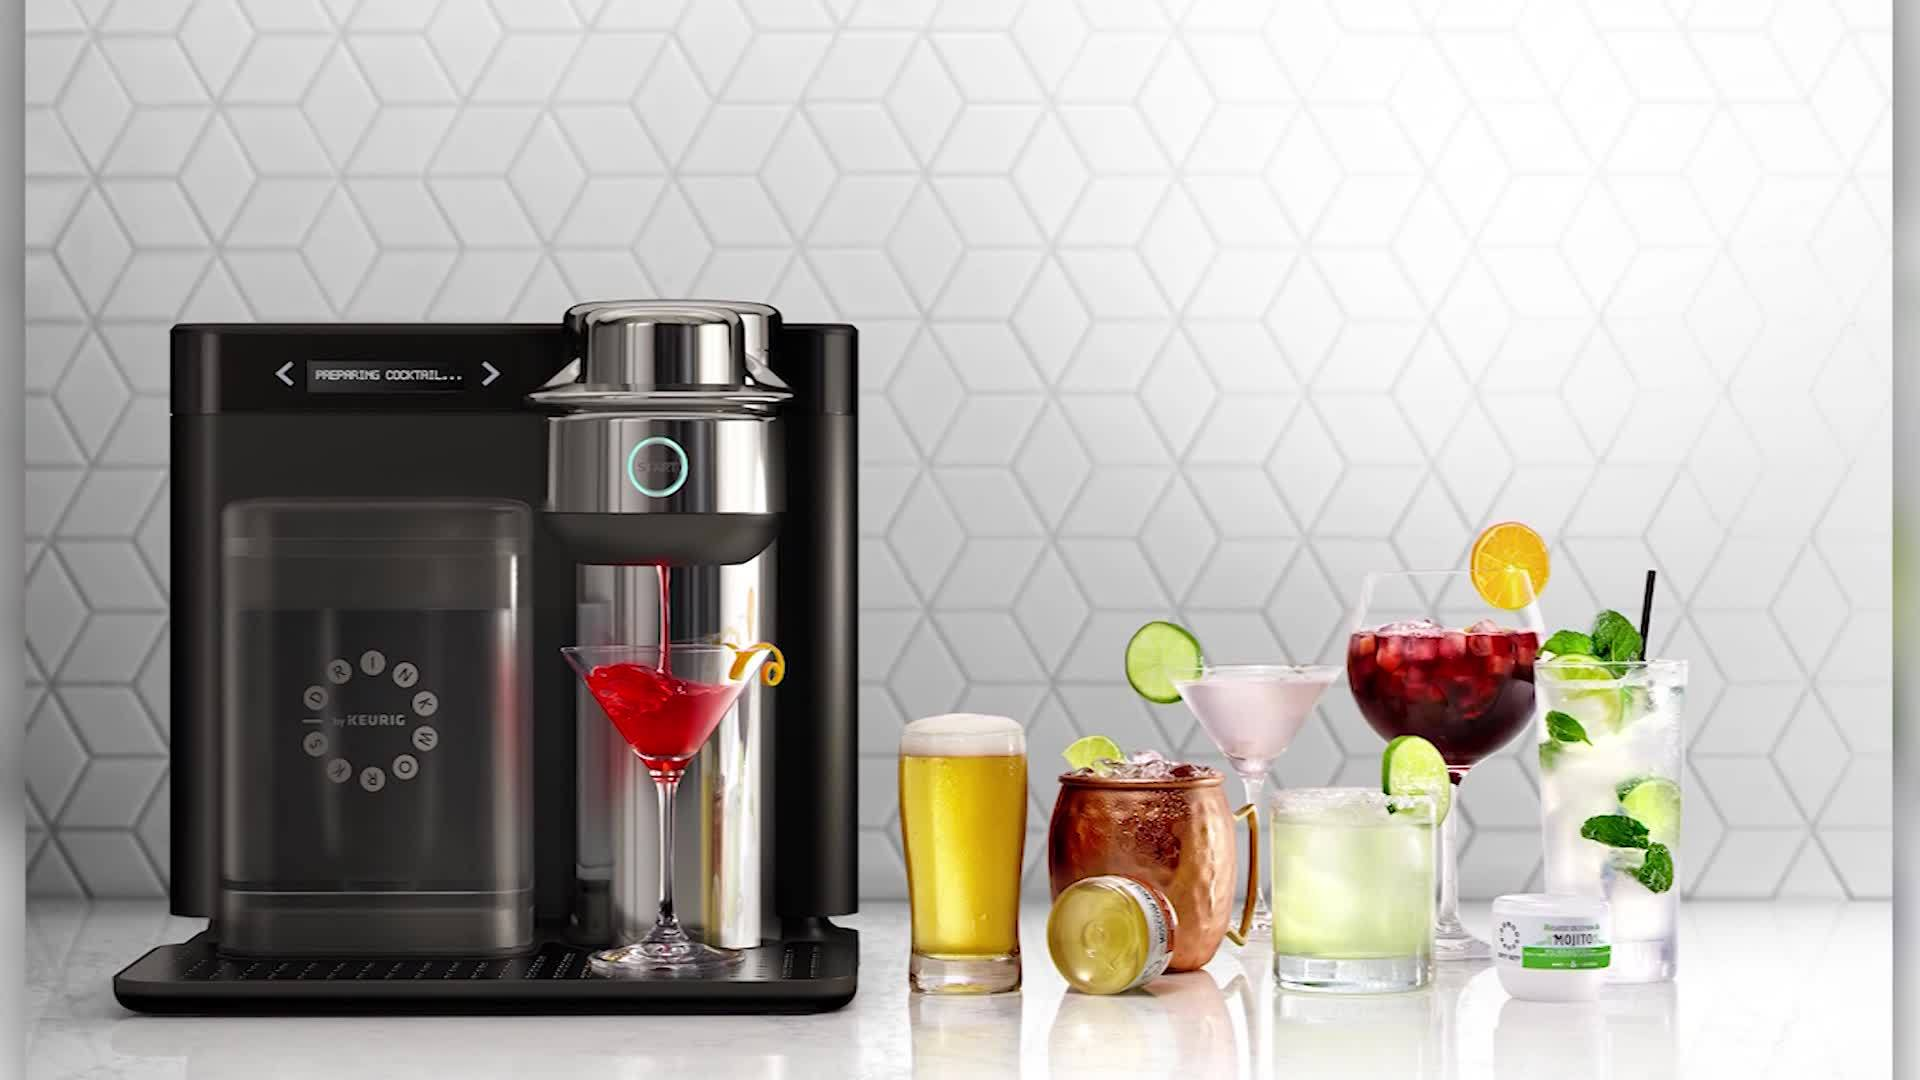 VIDEO: Keurig has come out with a machine that makes cocktails instead of coffee